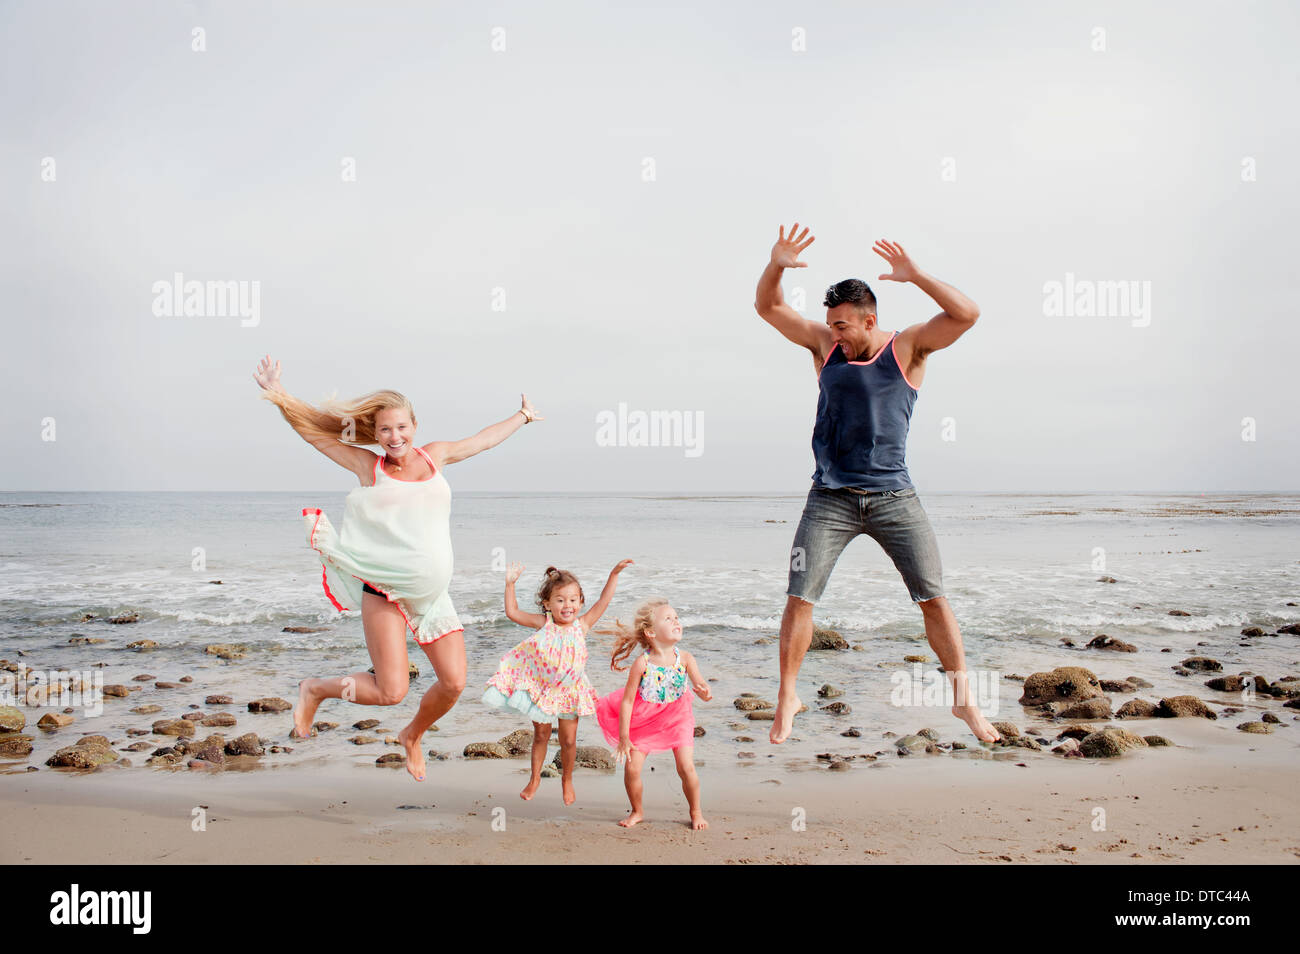 Parents and two young girls jumping mid air on beach - Stock Image